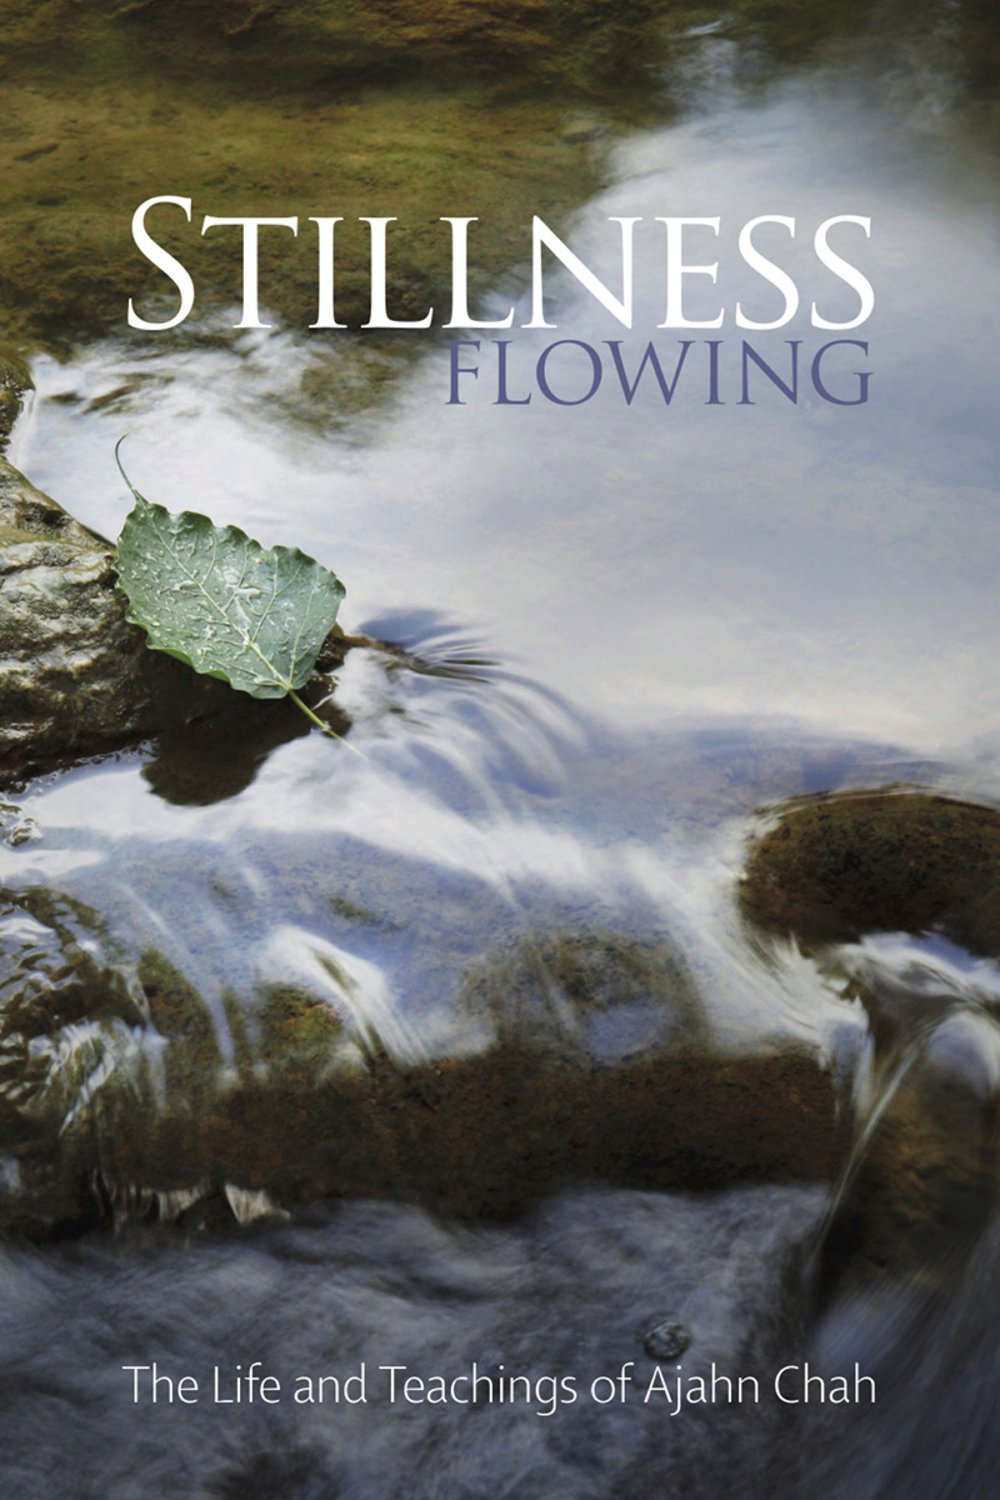 stillness-flowing-cover.jpg